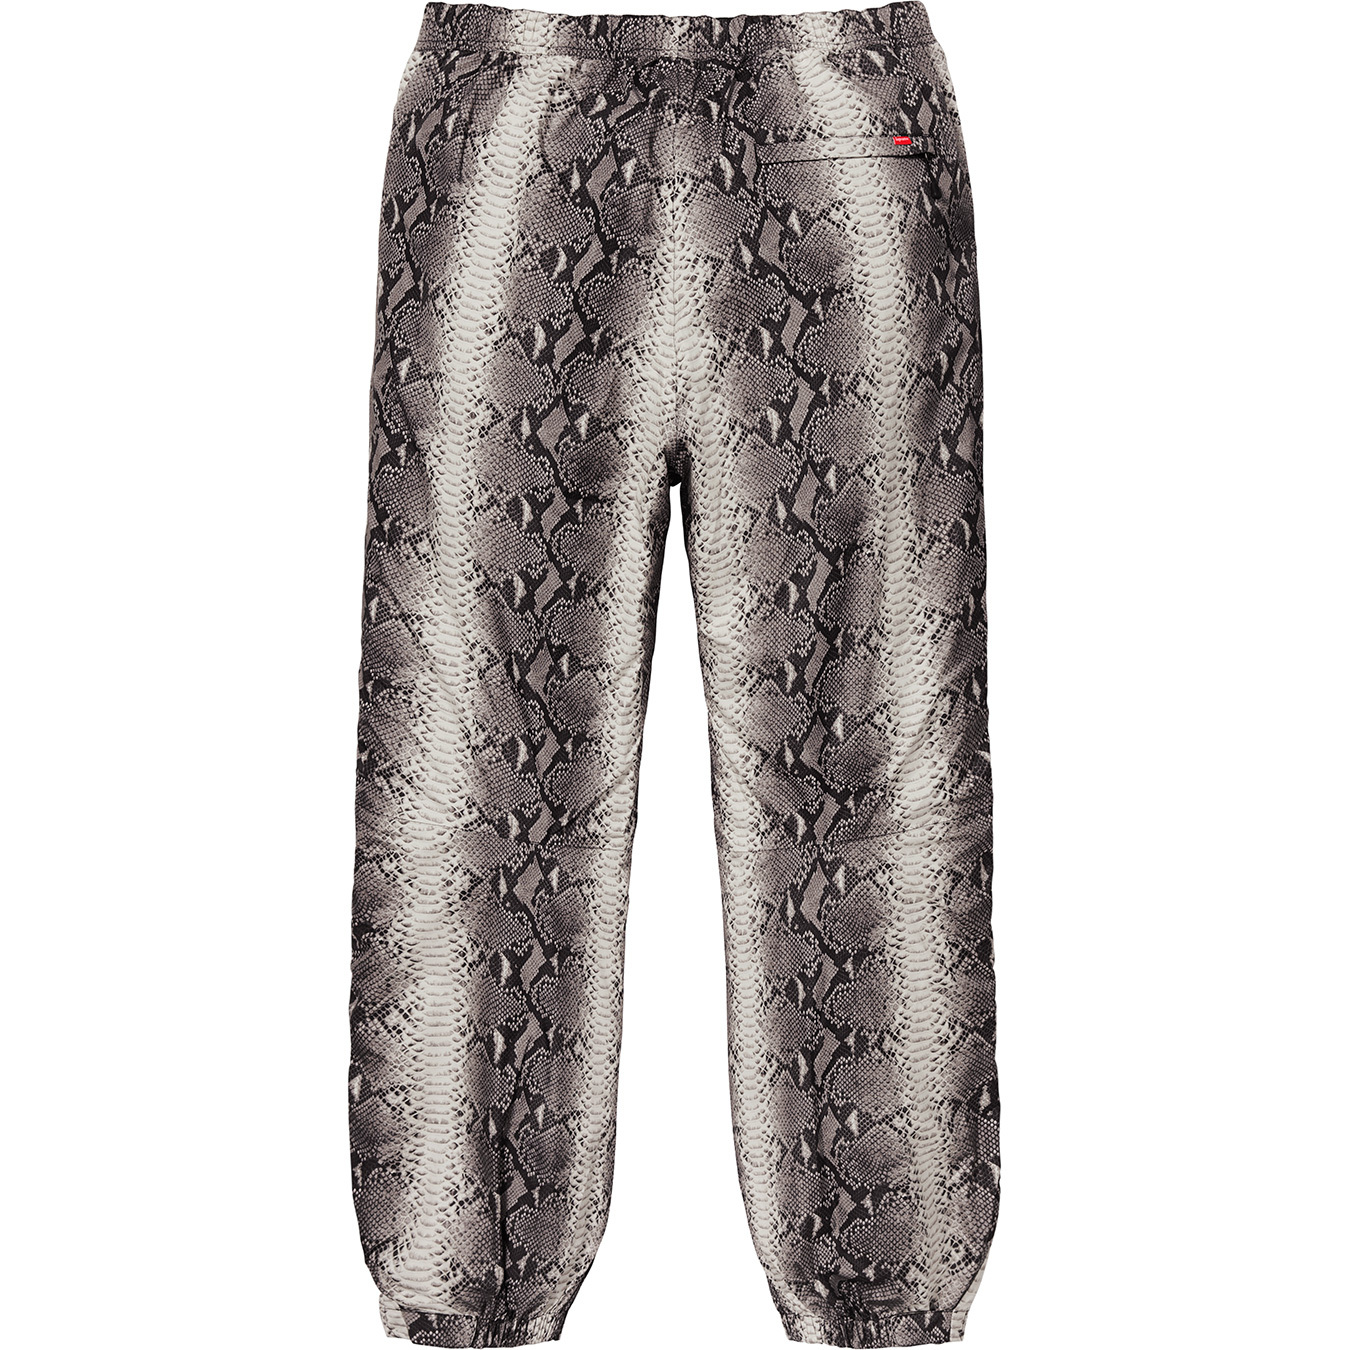 supreme-the-north-face-18ss-2nd-delivery-release-week16-20180609-snakeskin-taped-seam-pant